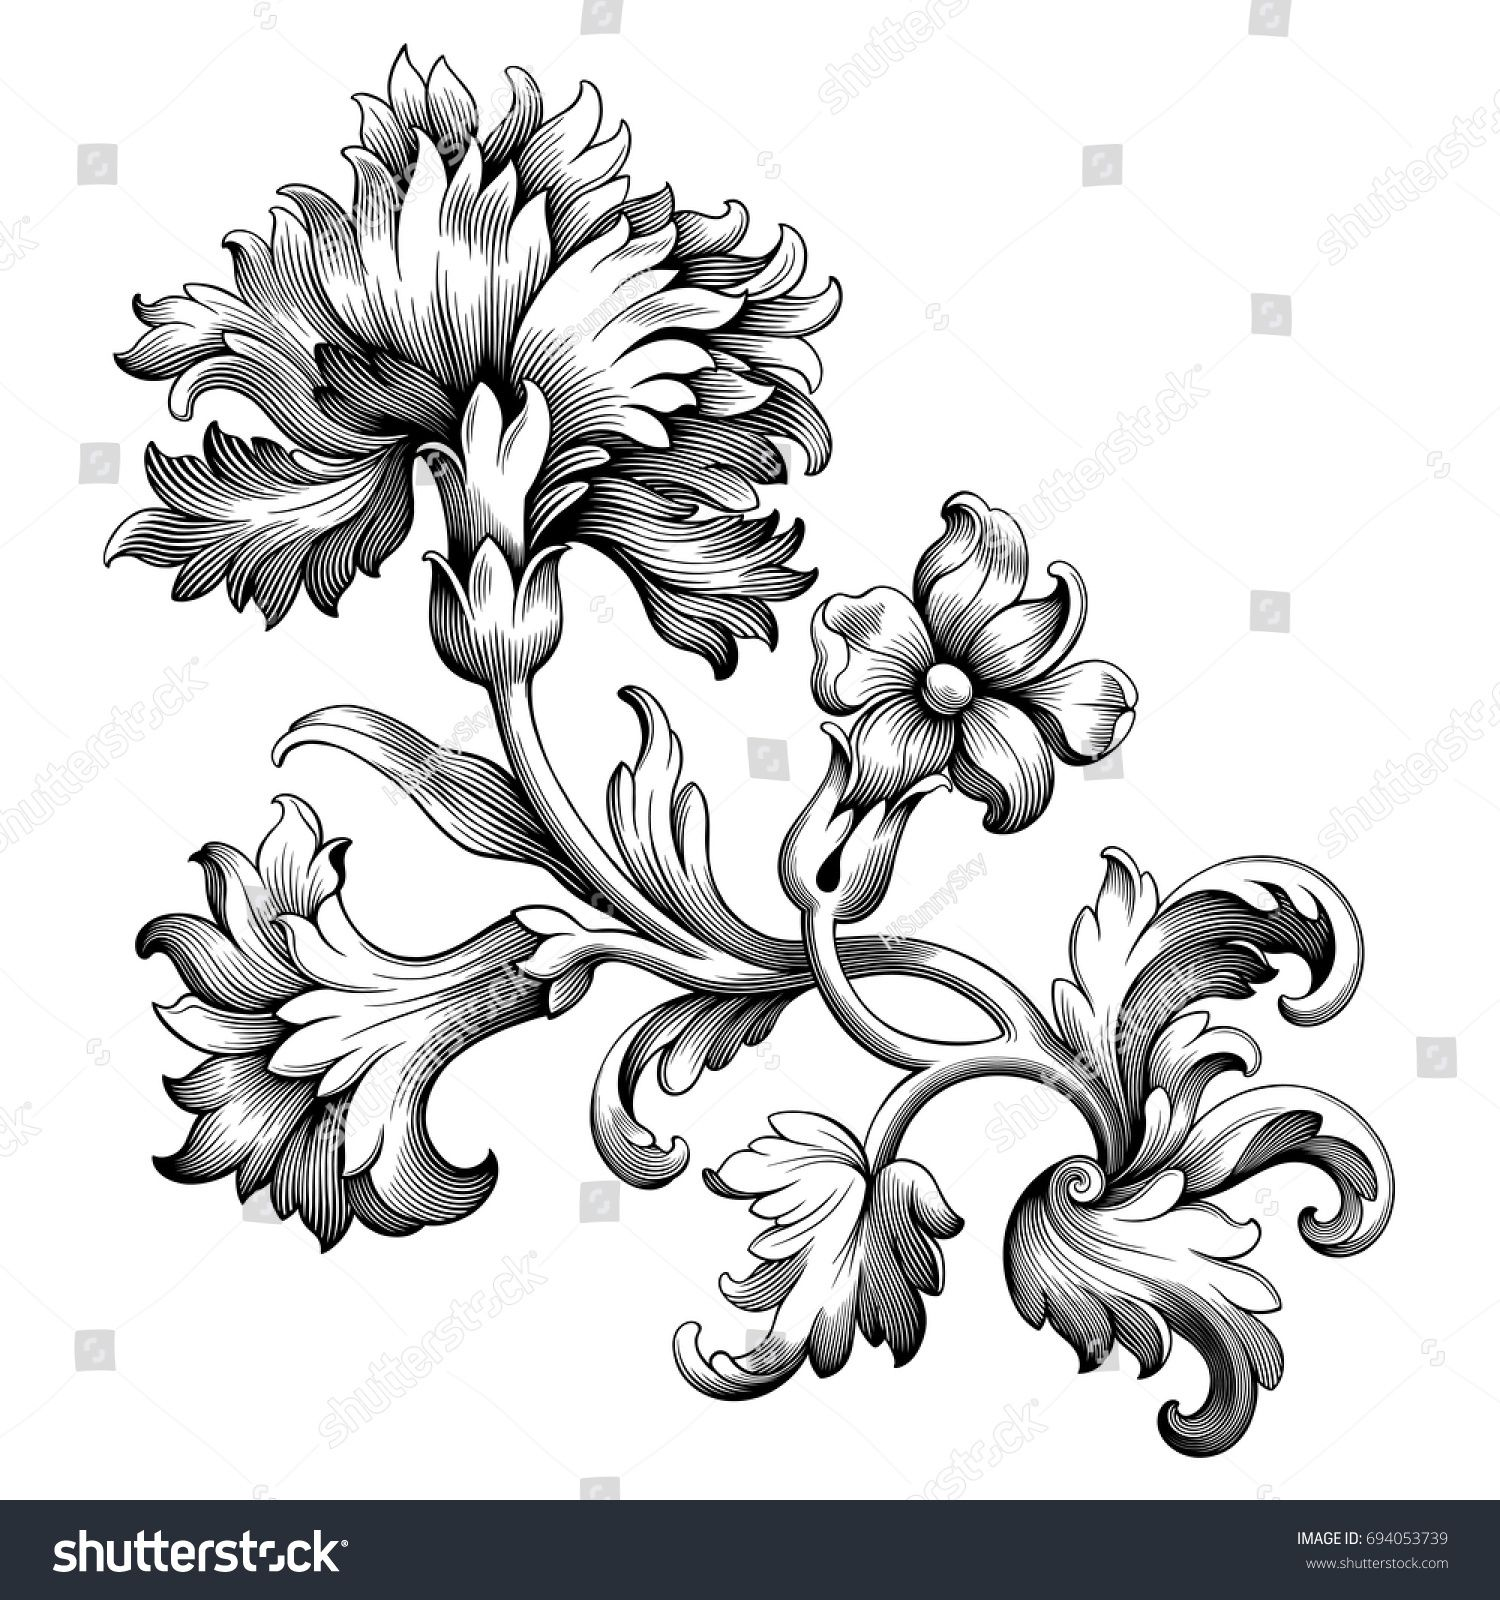 vintage frame tattoo designs. Rose Peony Carnation Flower Vintage Baroque Victorian Frame Border Floral Ornament Leaf Scroll Engraved Retro Pattern Decorative Design Tattoo Black And Designs